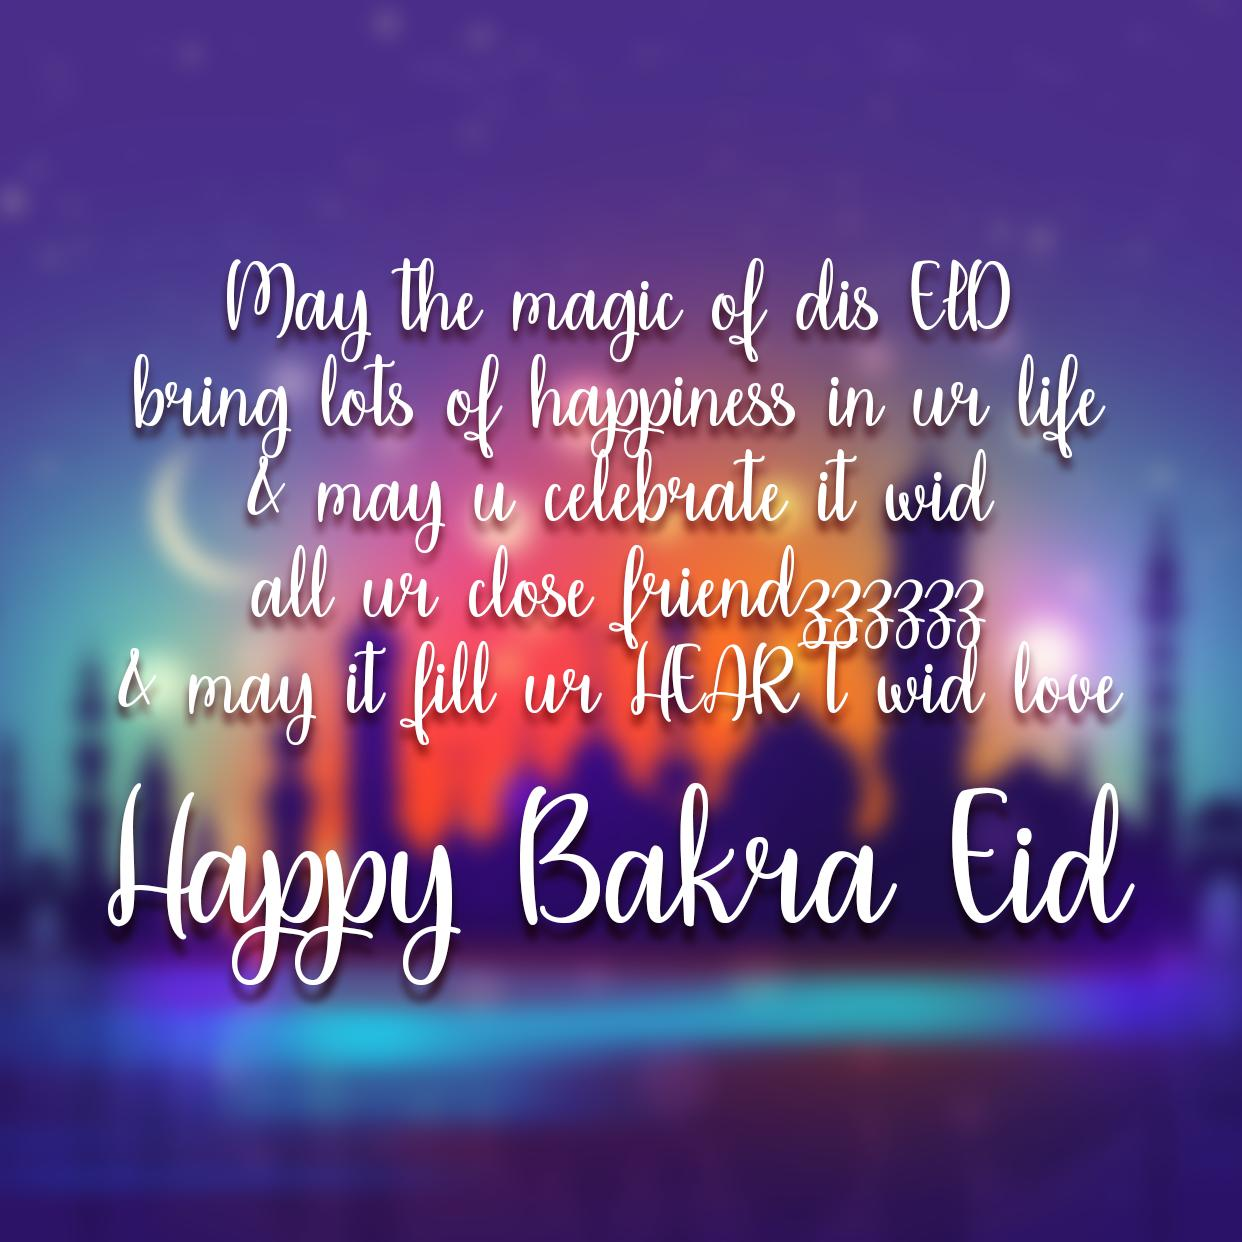 Bakra Eid Mubarak Quote images 2018 for Android - APK Download